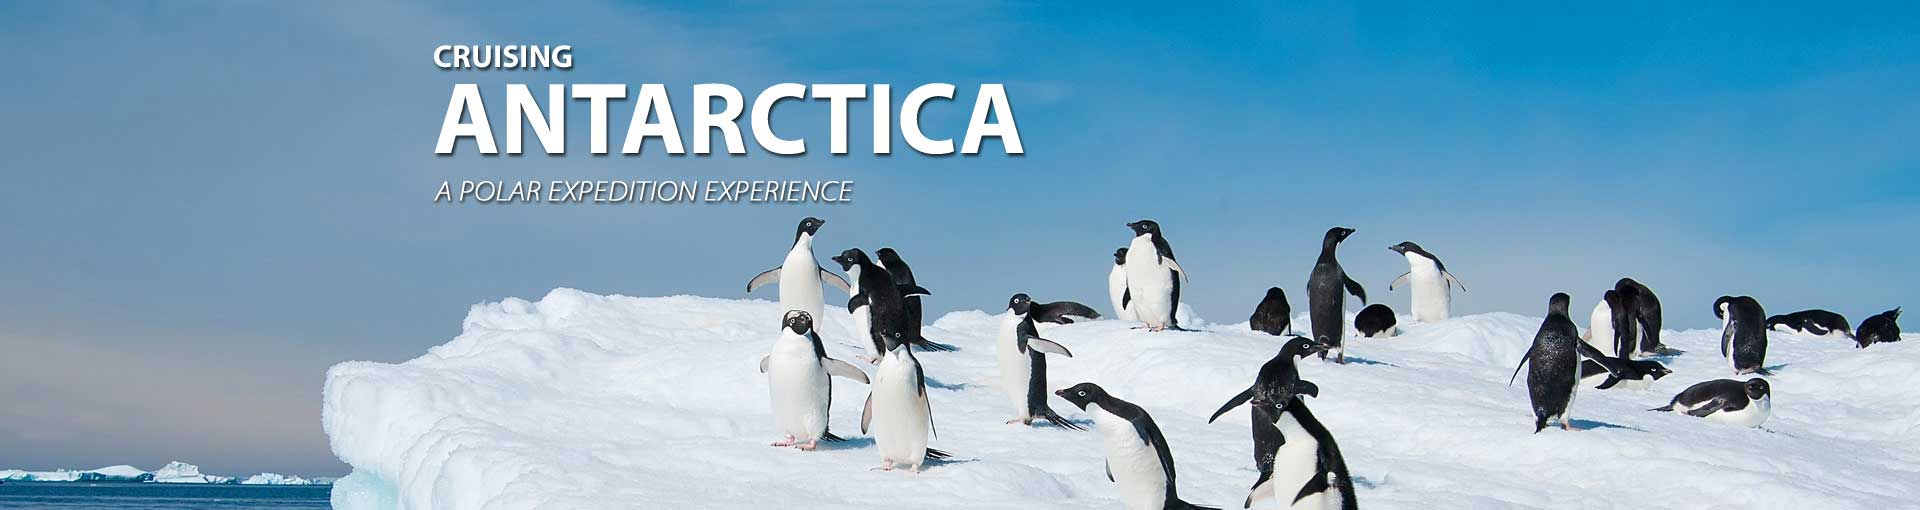 Cruise to Antarctica and see the penguins